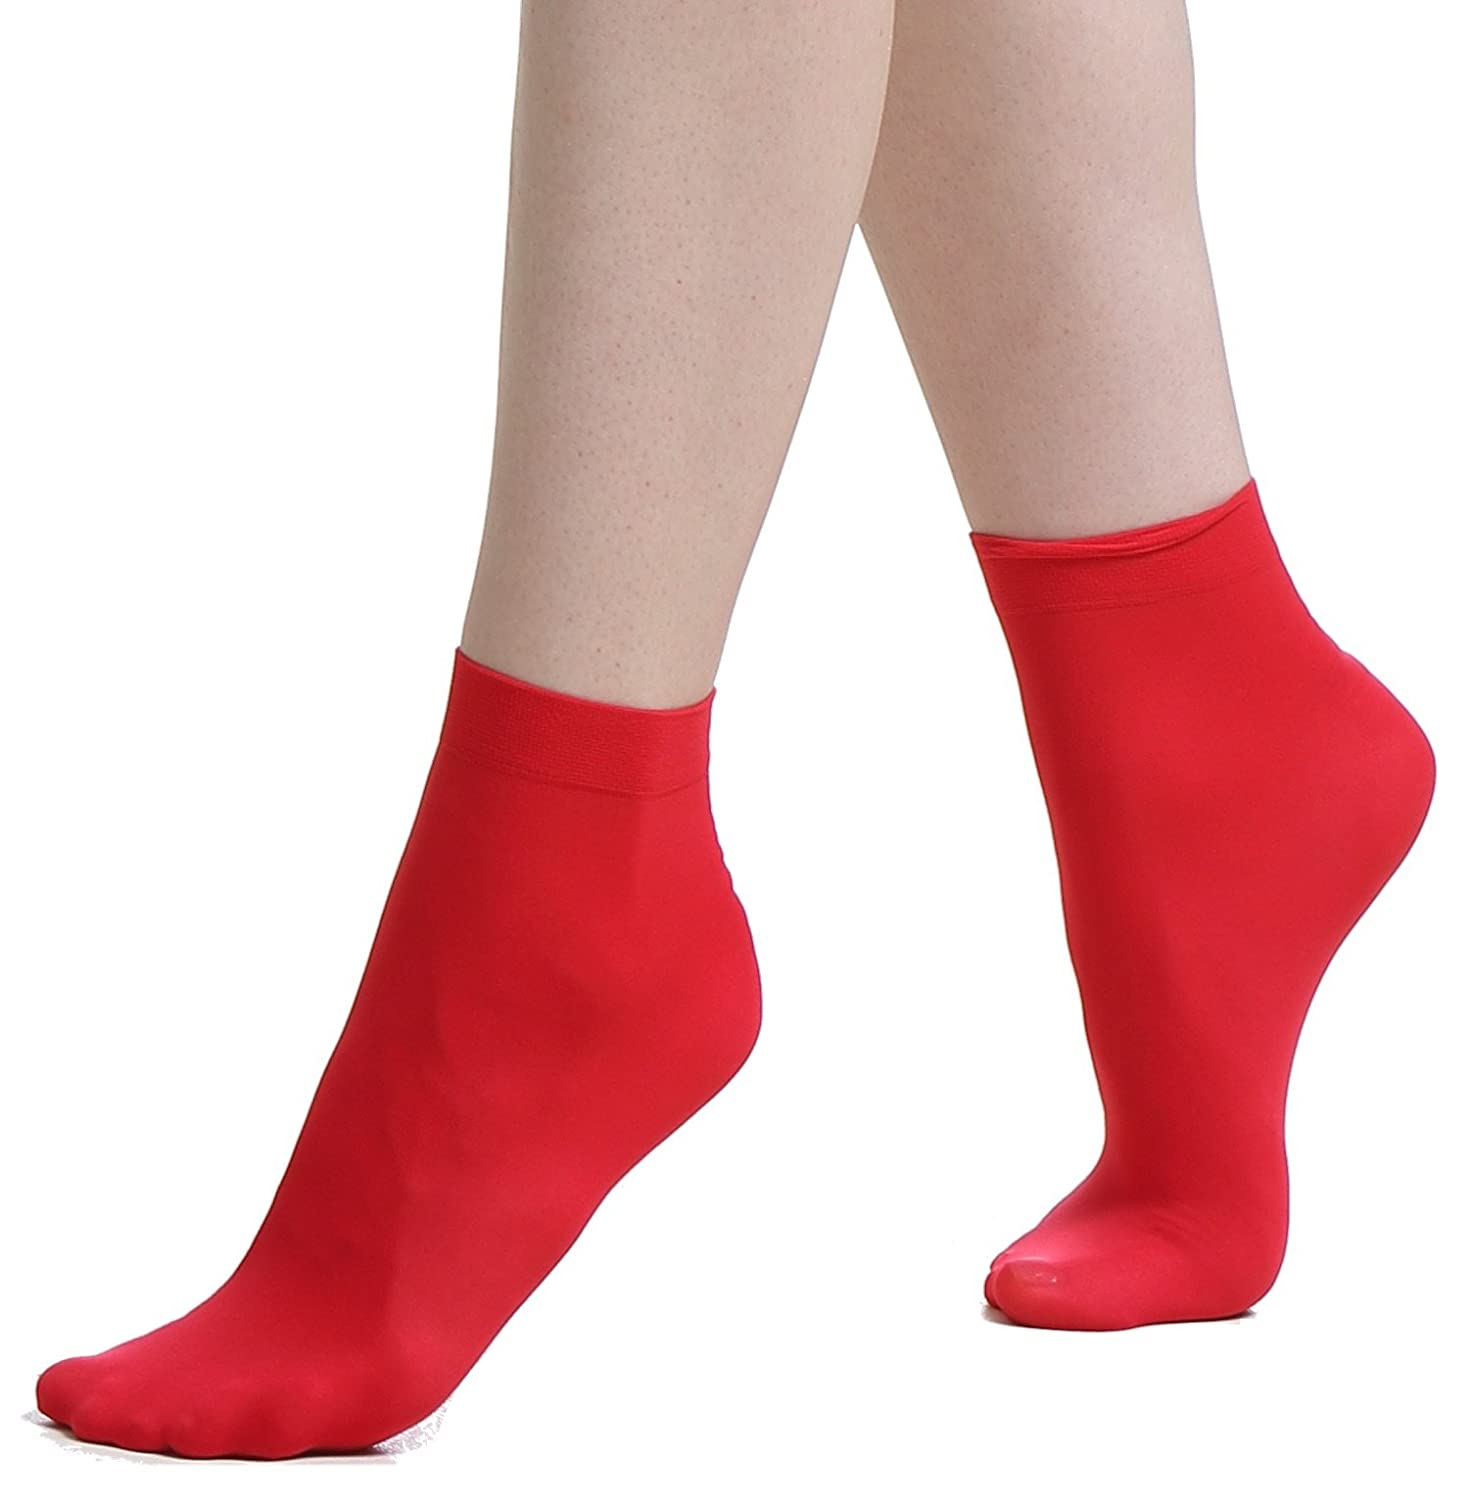 Ankle High Socks - 6 Pairs of 40 Denier Opaque Semi Sheer Premium Quality Anklets with Soft Comfort Top - Made in Europe'